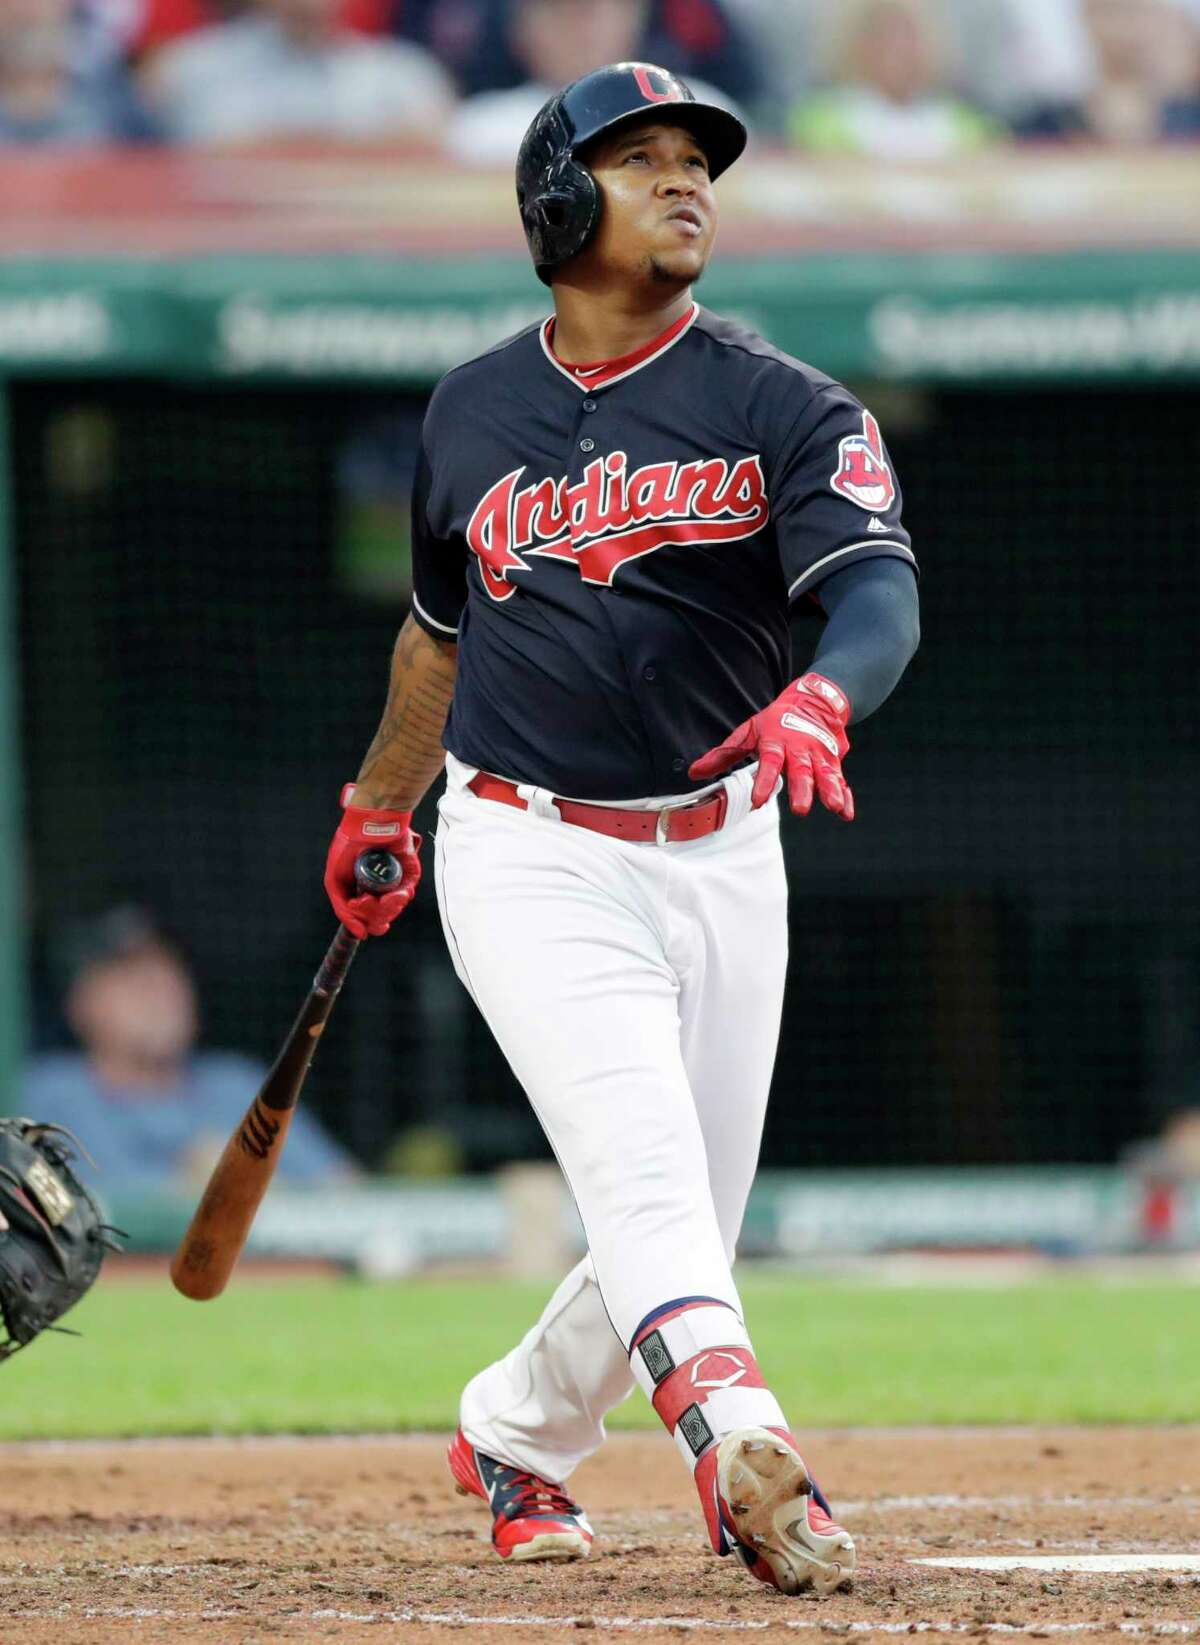 Cleveland Indians' Jose Ramirez watches his three-run home run off Cincinnati Reds relief pitcher Tanner Rainey during the third inning of a baseball game Wednesday, July 11, 2018, in Cleveland. (AP Photo/Tony Dejak)